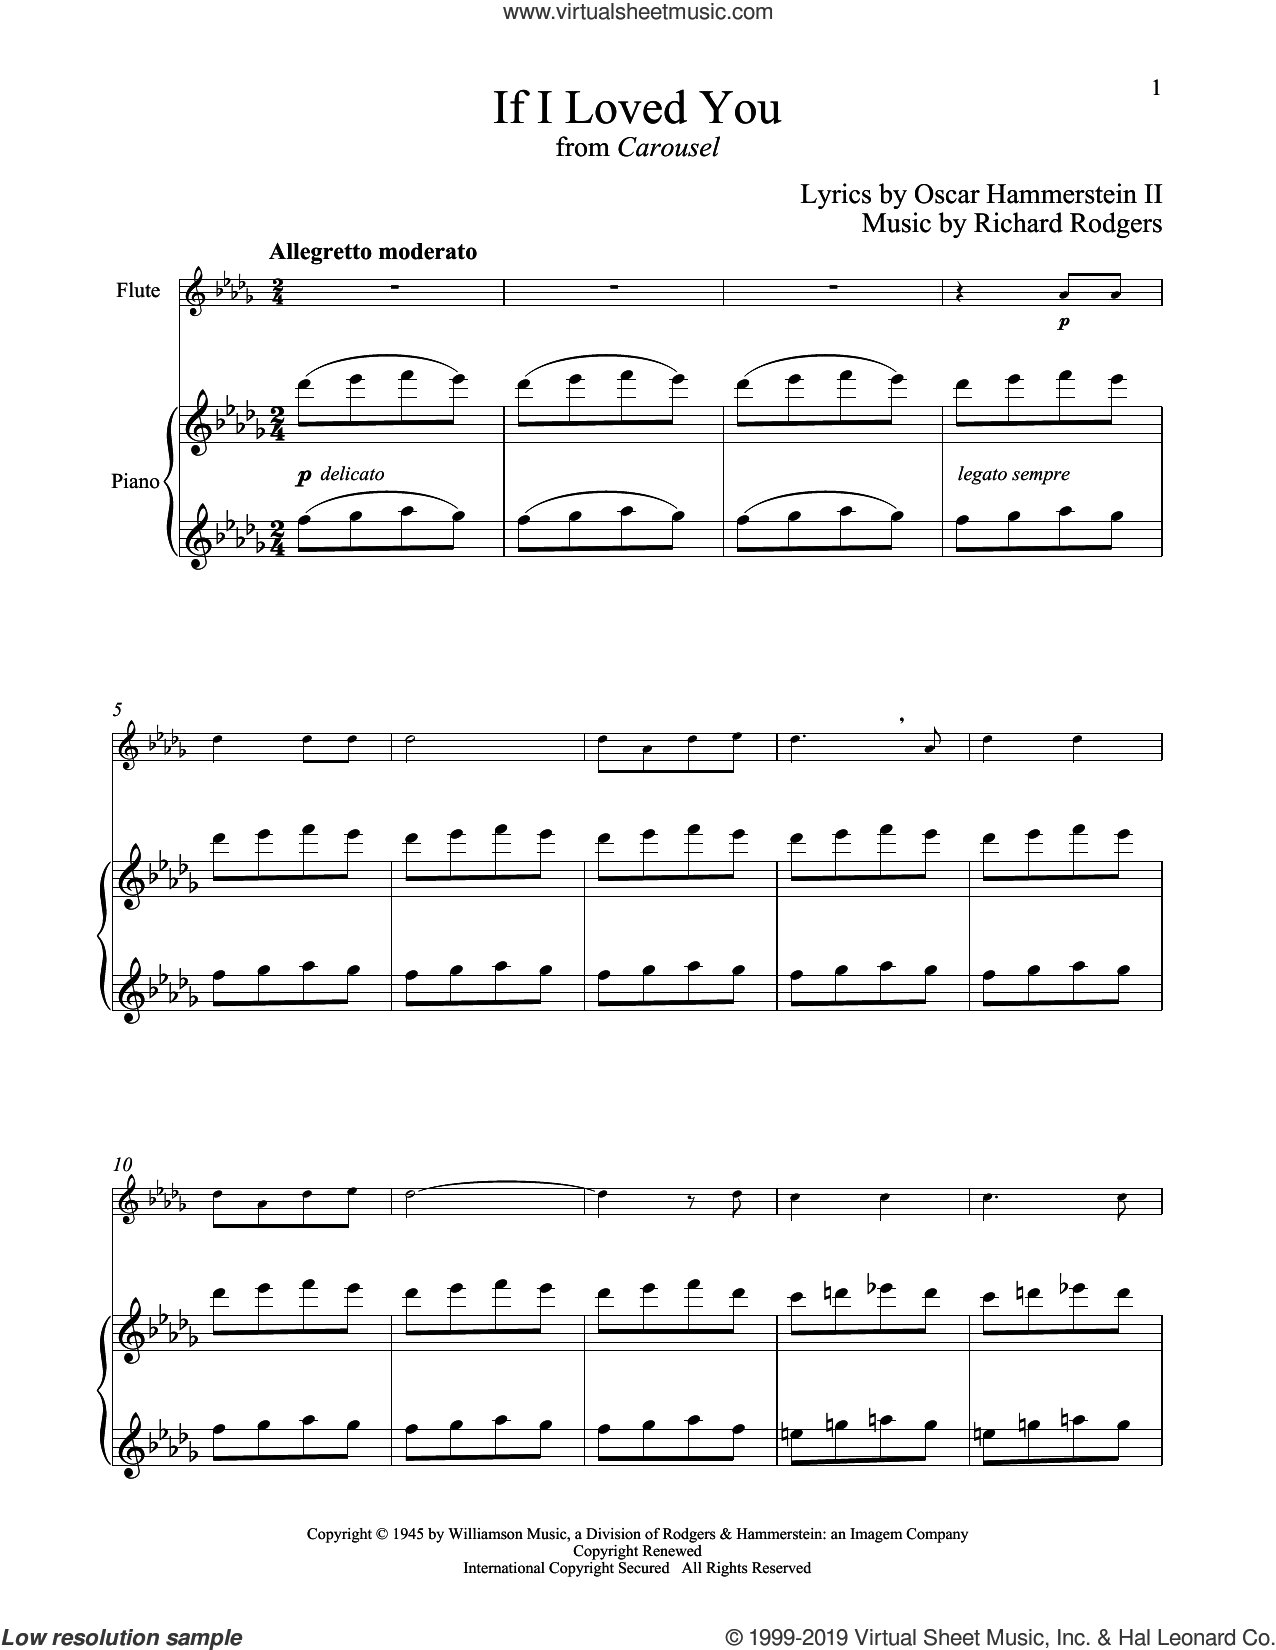 If I Loved You (from Carousel) sheet music for flute and piano by Rodgers & Hammerstein, Oscar II Hammerstein and Richard Rodgers, intermediate skill level